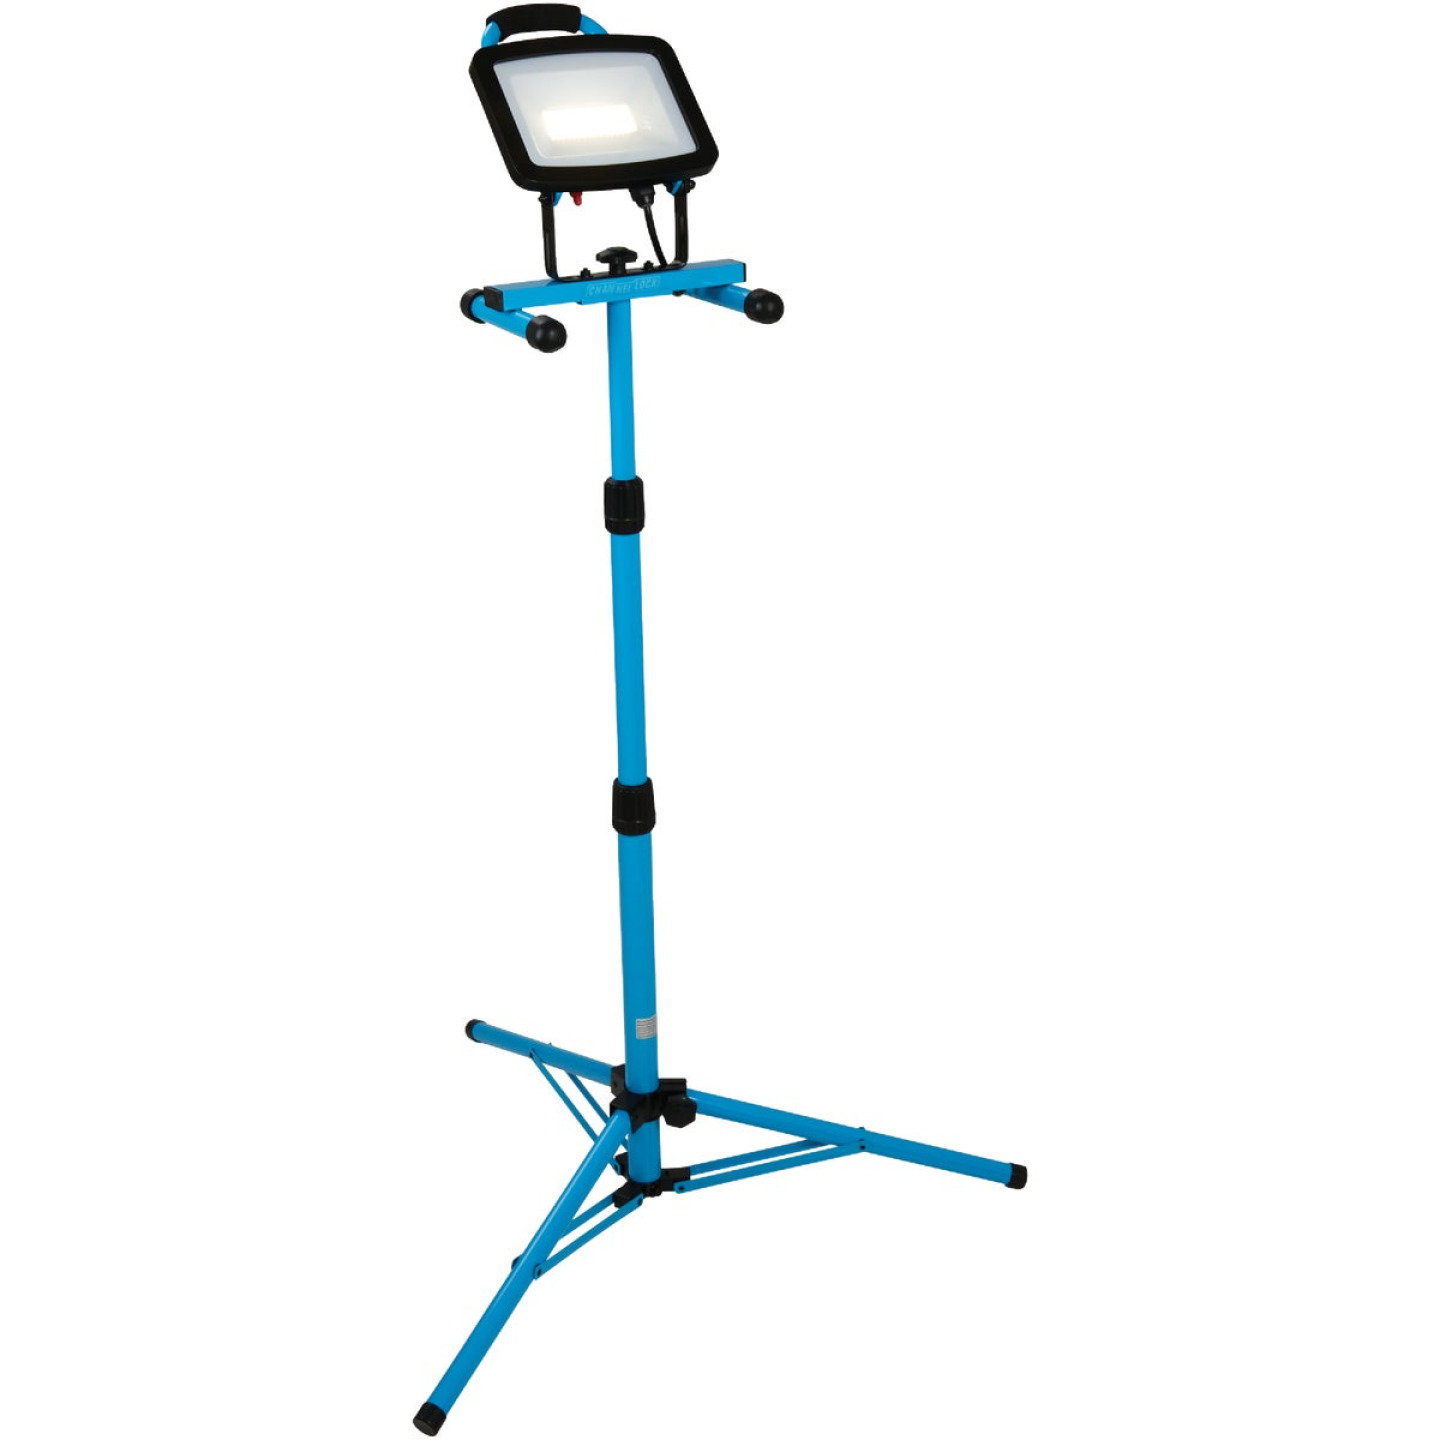 Channellock 6600 Lm. LED Tripod Stand-Up Work Light Image 7